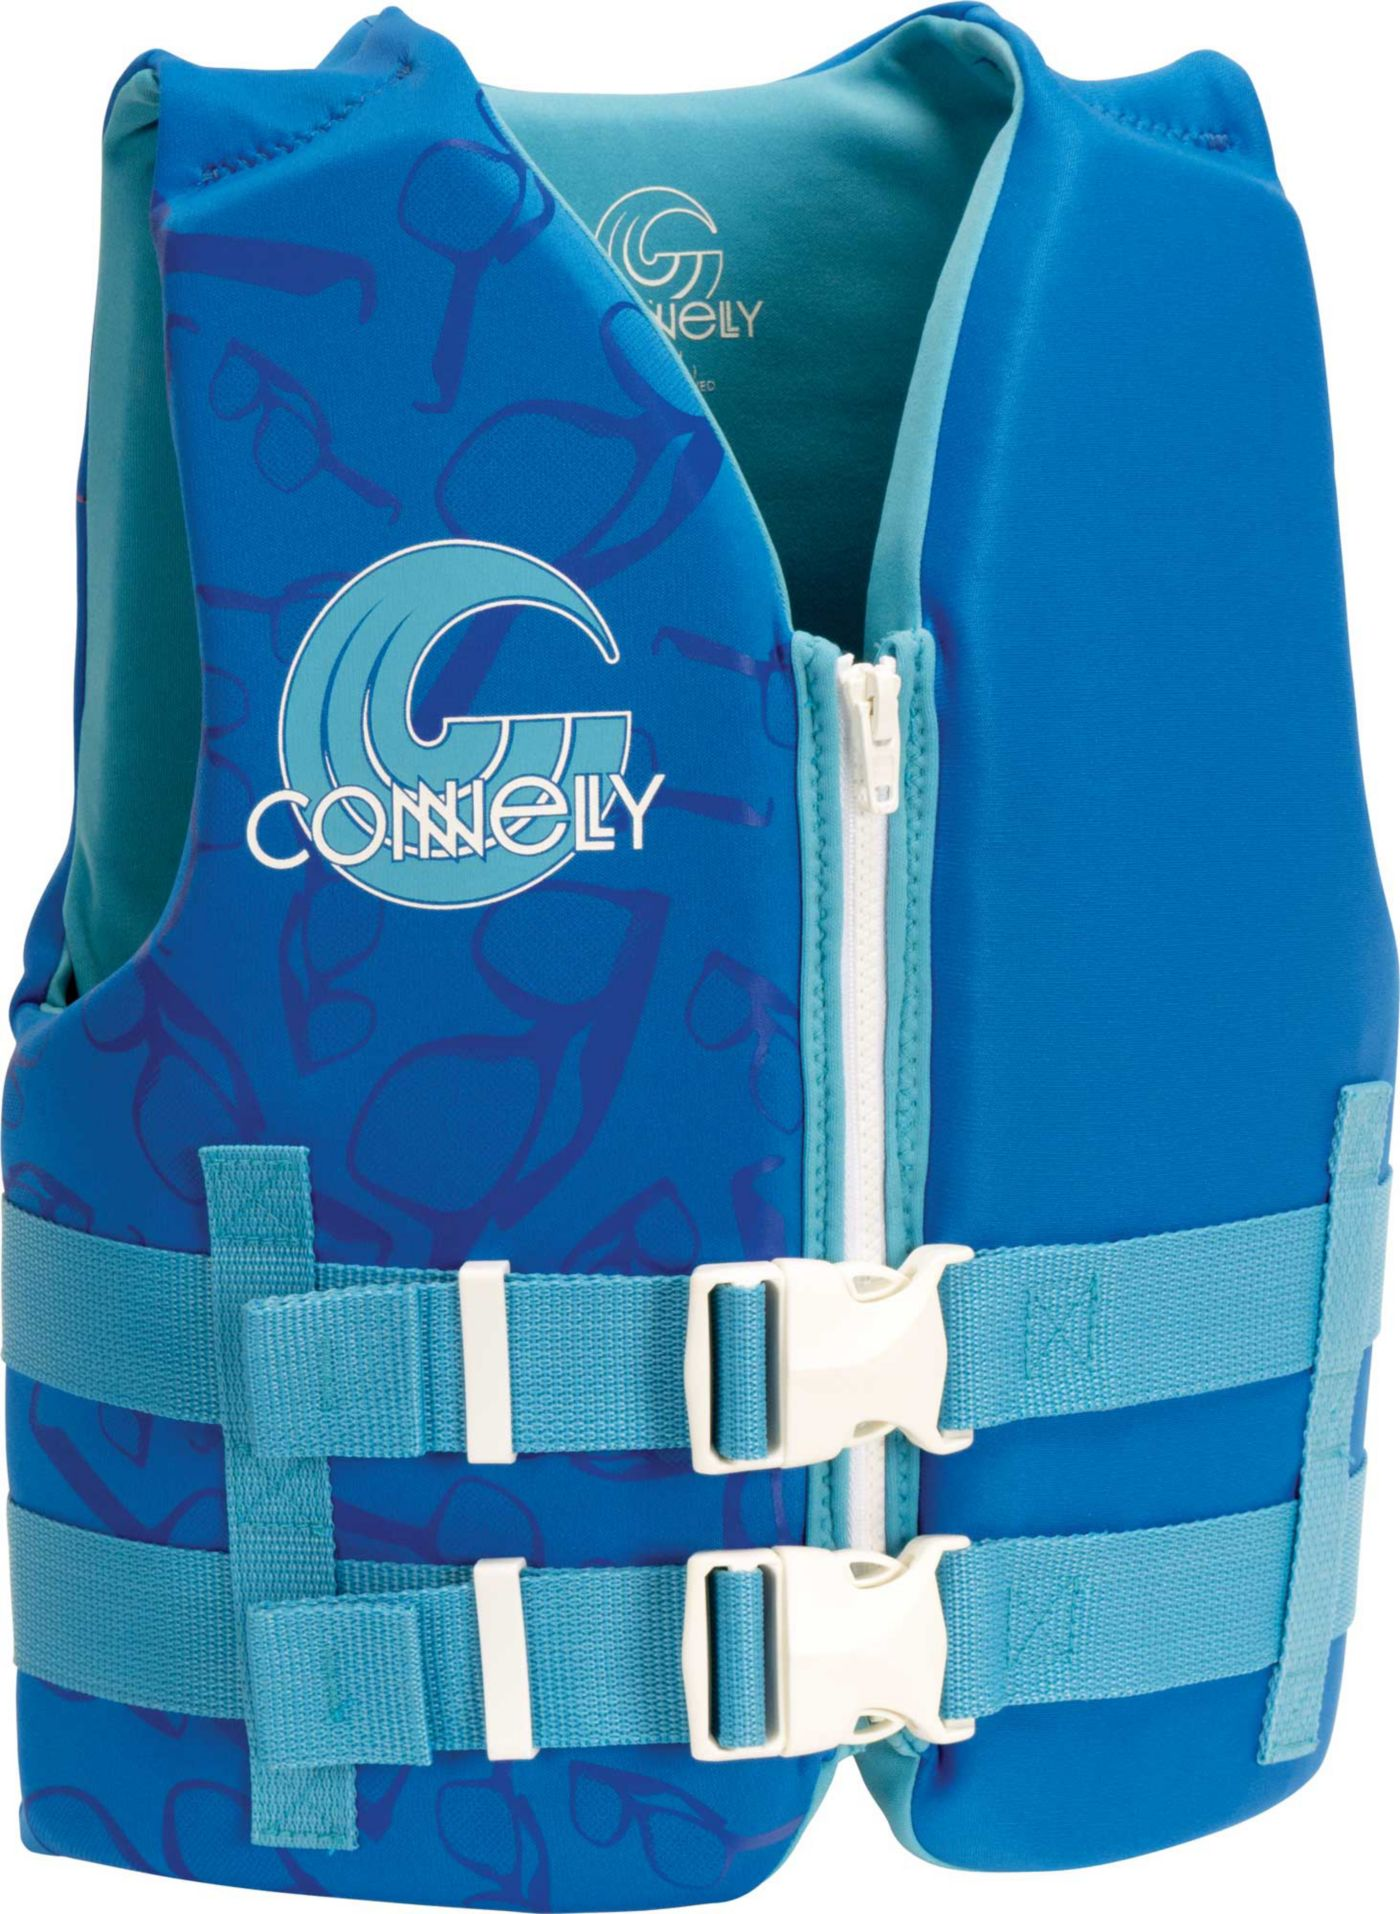 Connelly Youth Promo Neoprene Life Vest  Dicks Sporting Goods-1835